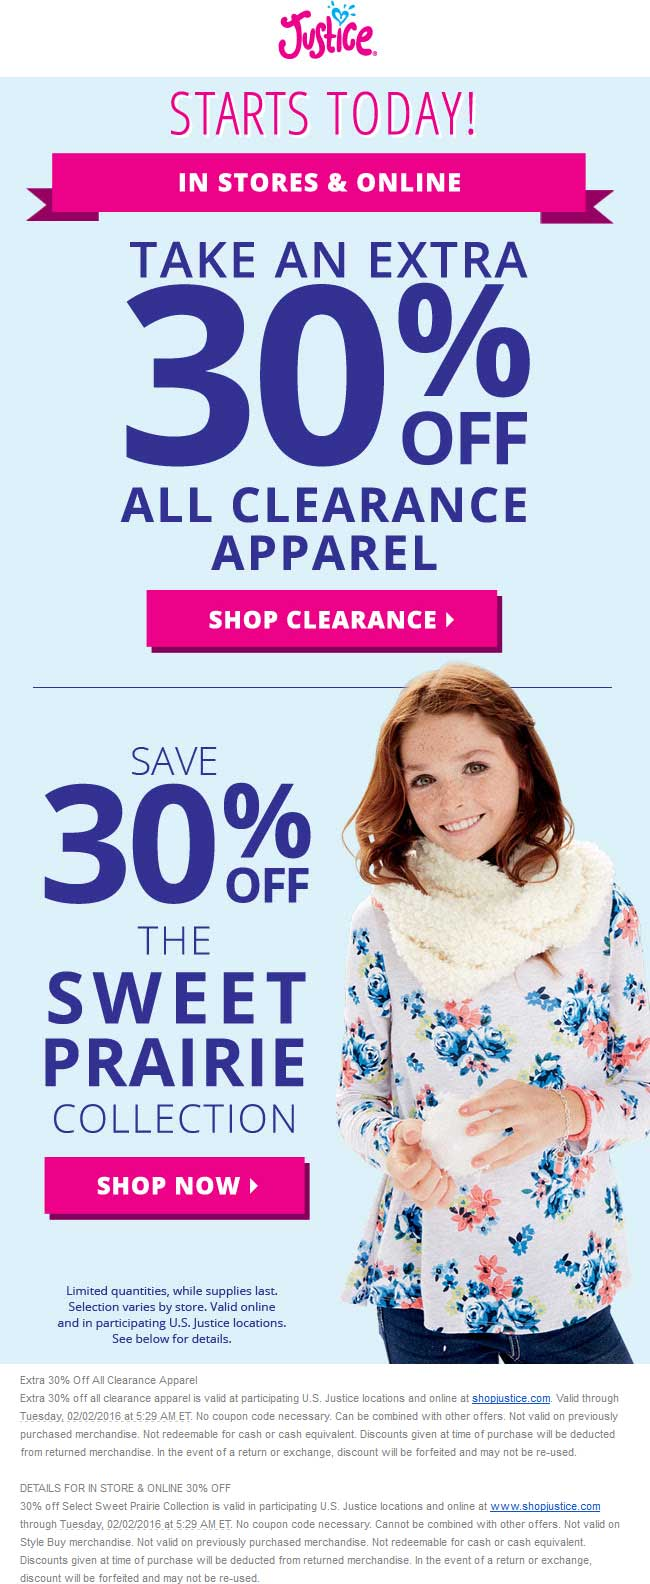 Justice Coupon February 2017 Extra 30% off clearance & prairie collection at Justice, ditto online